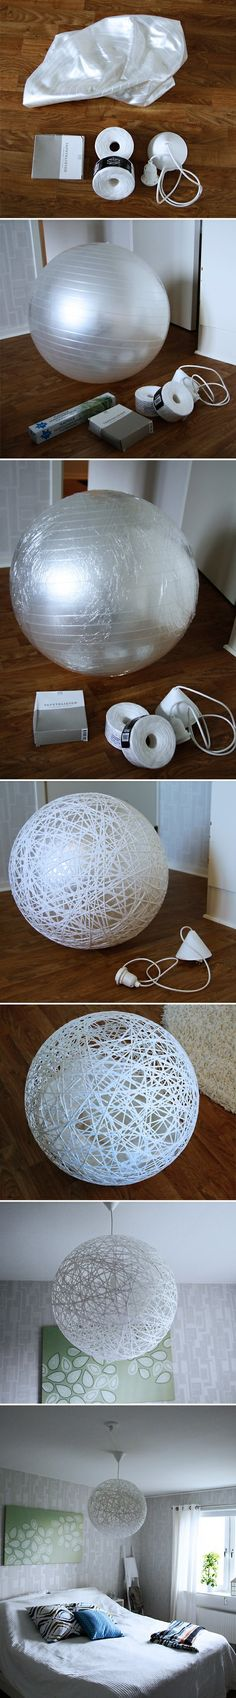 Make it yourself hanging light. Neat focal point, or multiple in various sizes could be a delightful arrangement and light display.